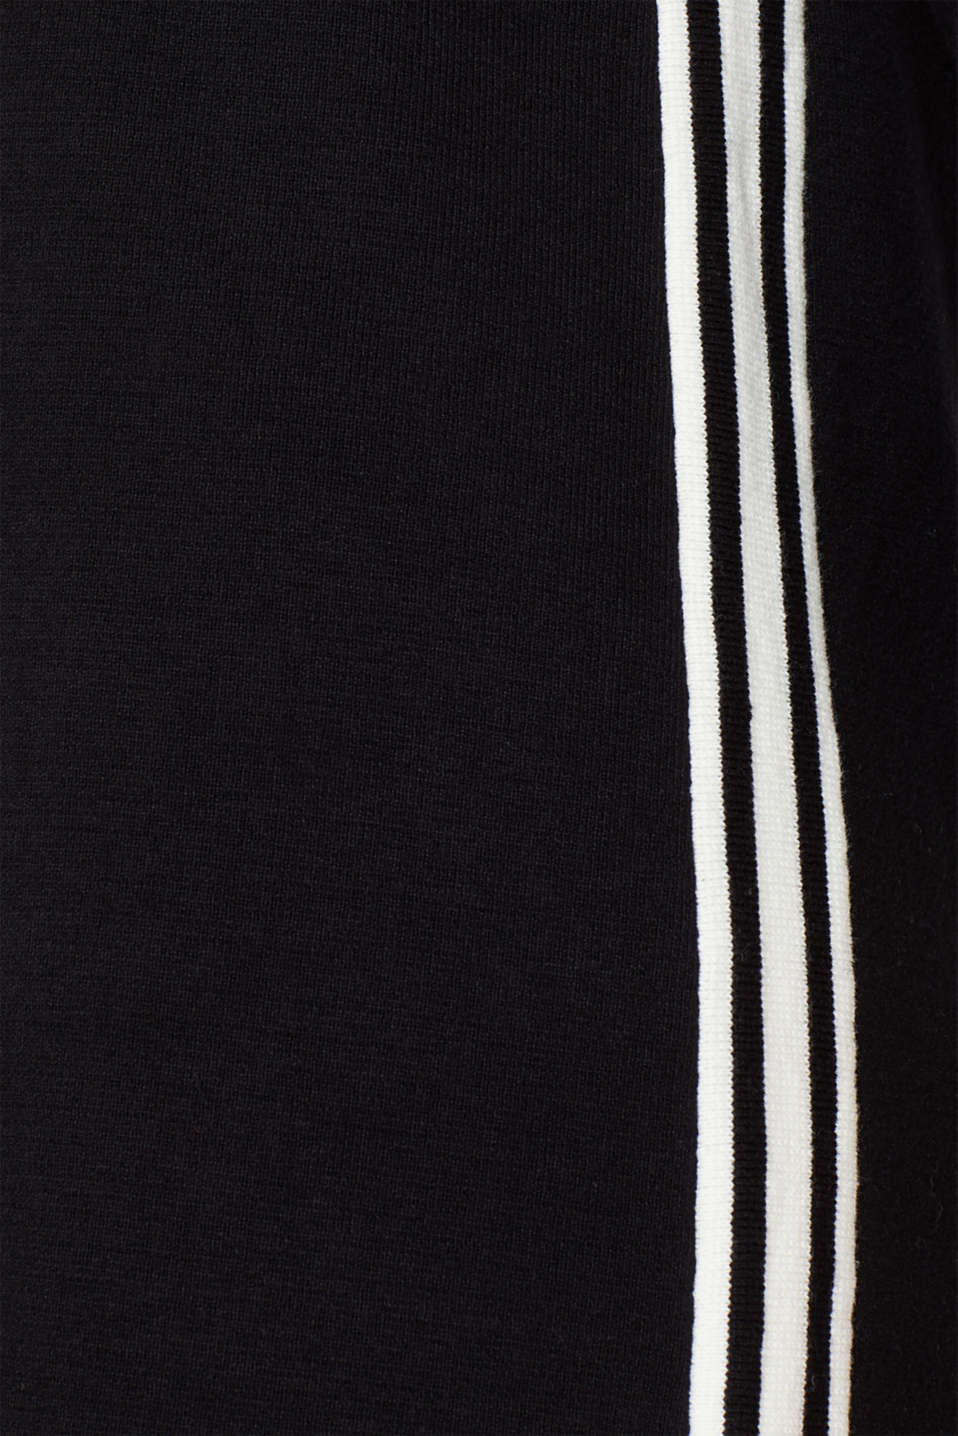 Polo knit dress with racing stripes, BLACK 2, detail image number 4